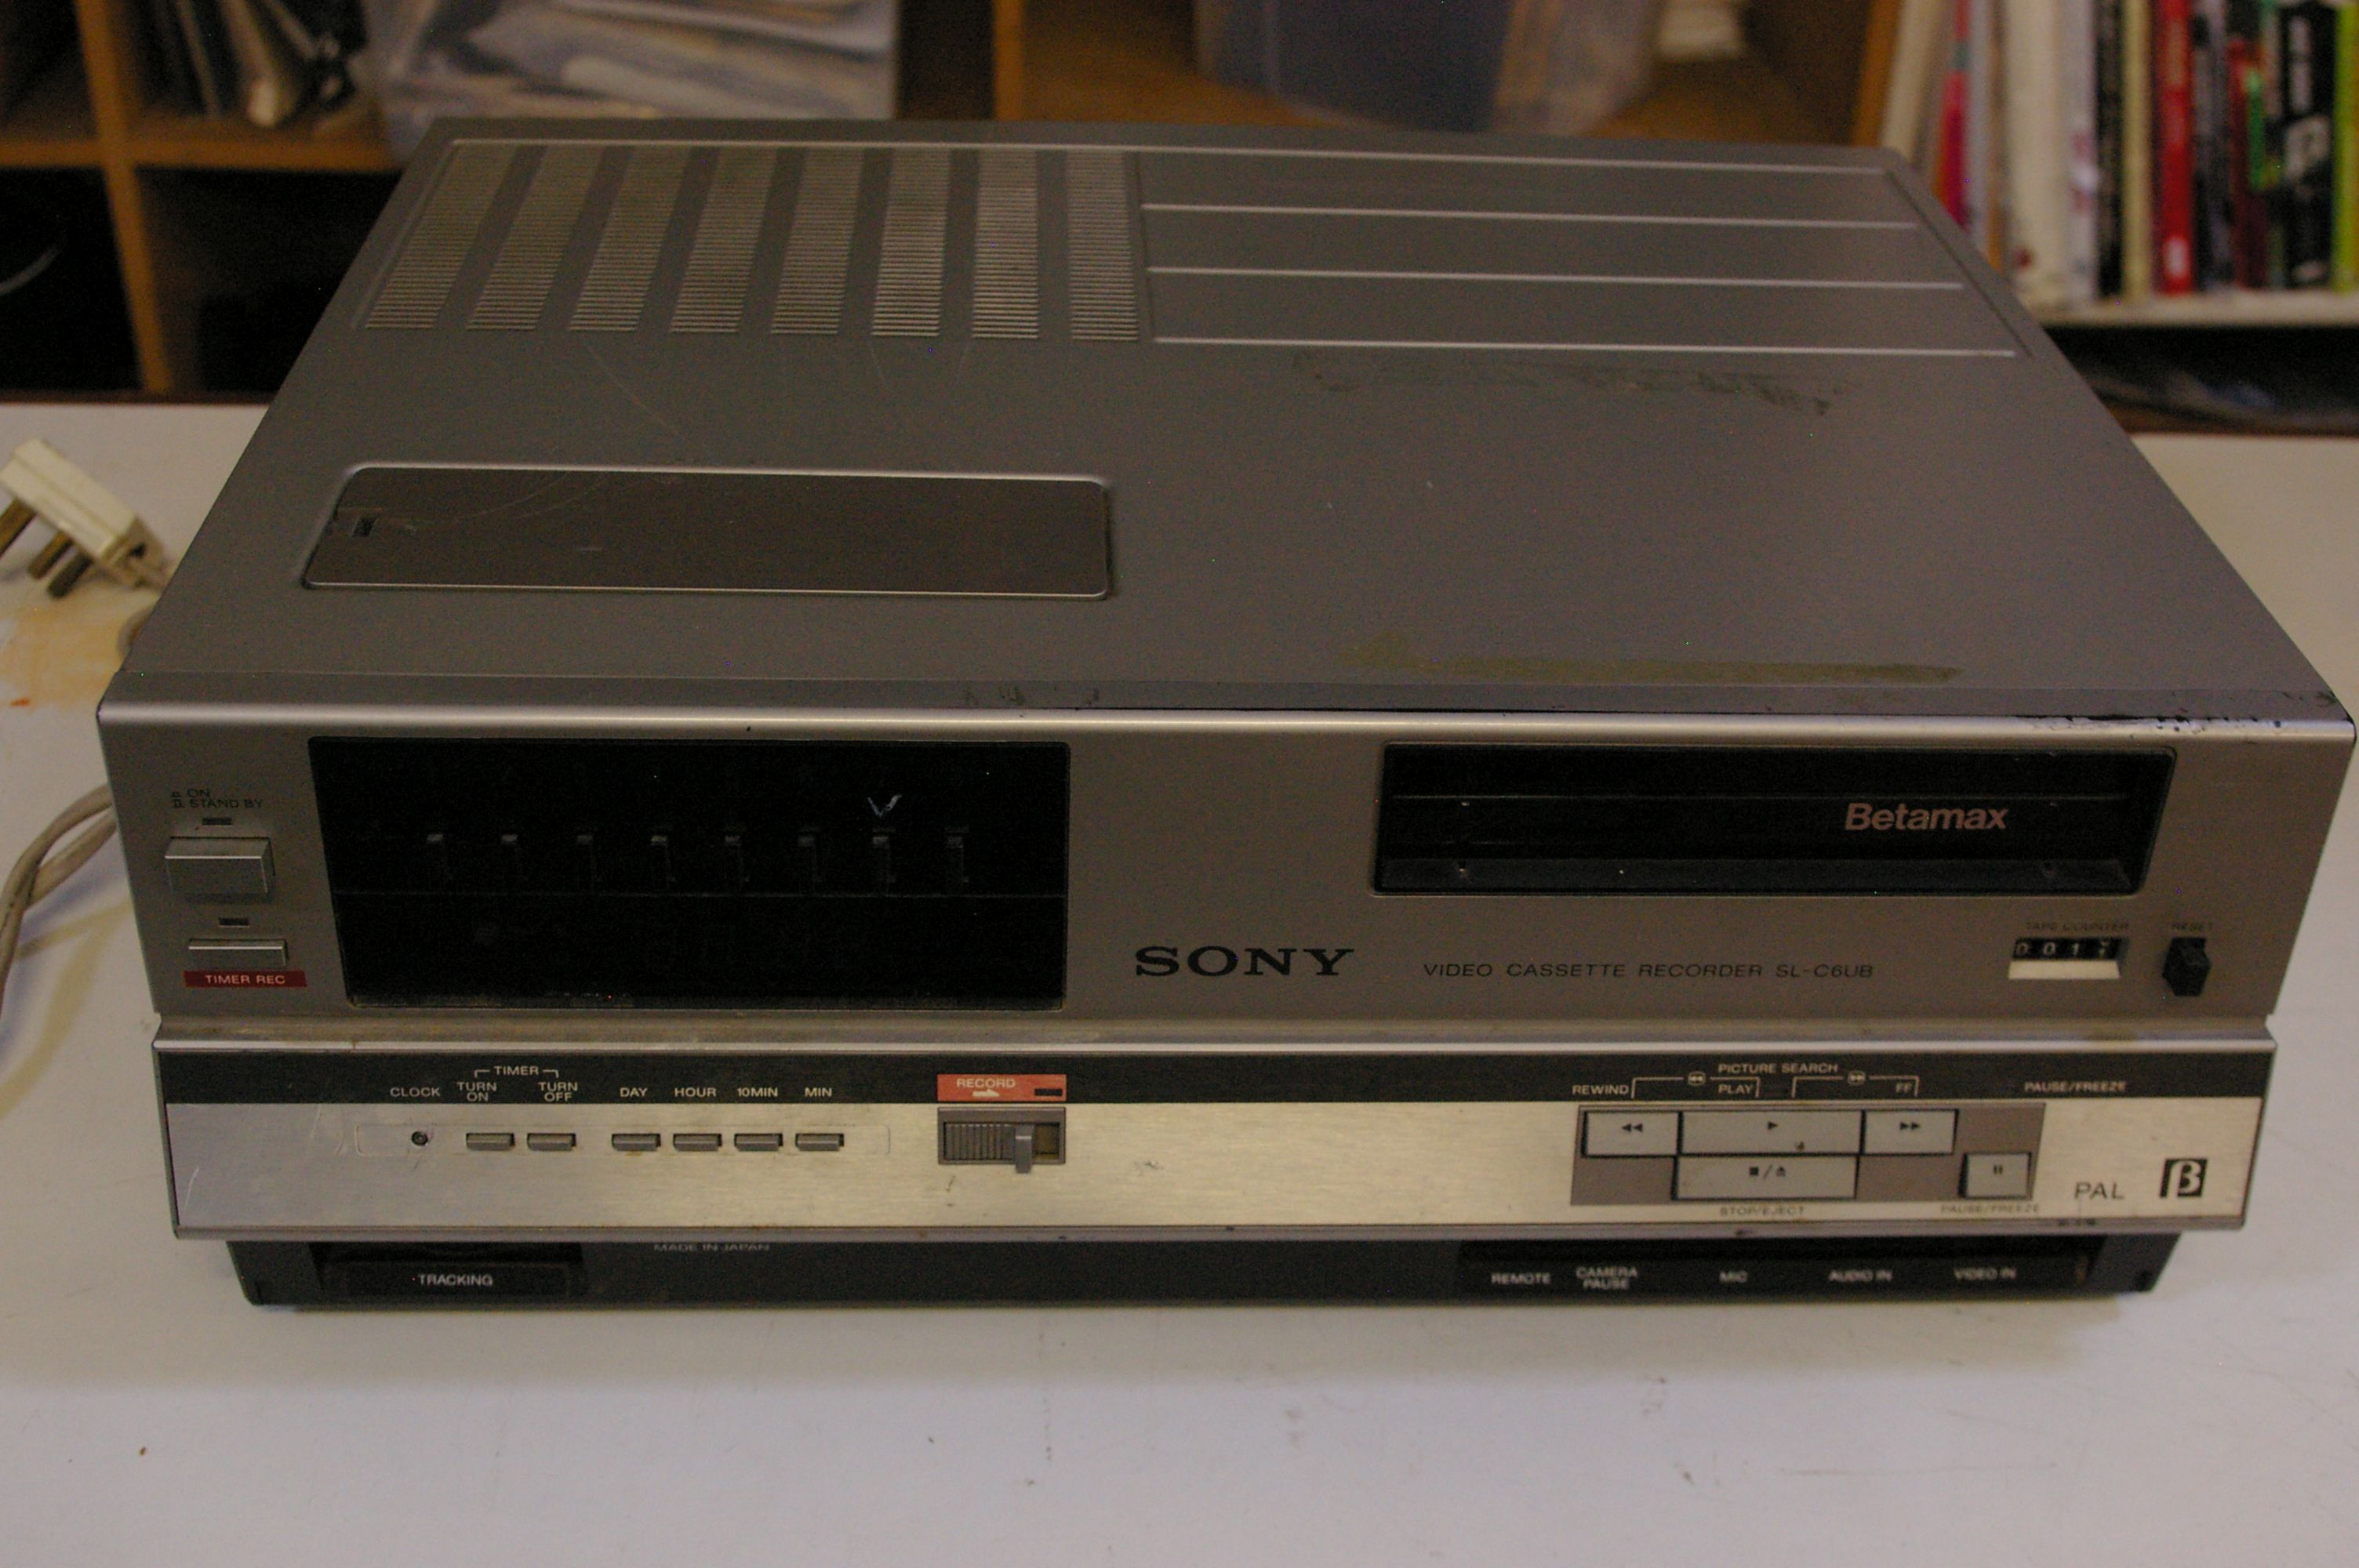 Lot 364 - A vintage Sony Betamax player SL-C6UB, and a Panasonic video recorder Provenance: from the estate of